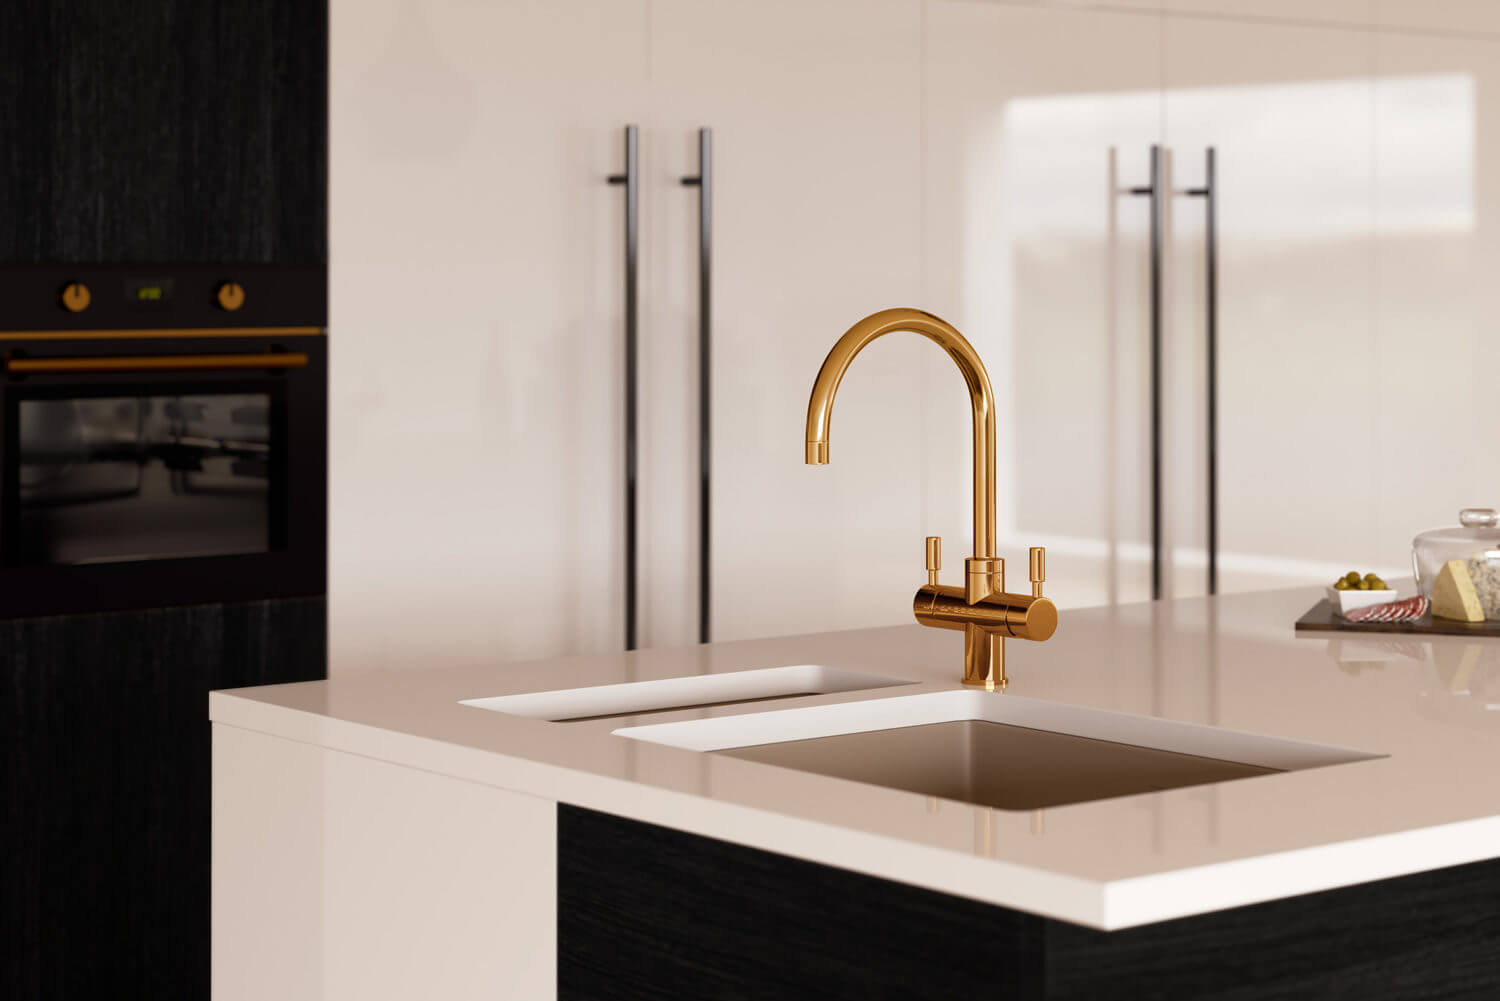 Close up on kitchen 3D rendering showing tap product CGI - sleek black and white design with polished wooden floors, gold tones and taps to the centre